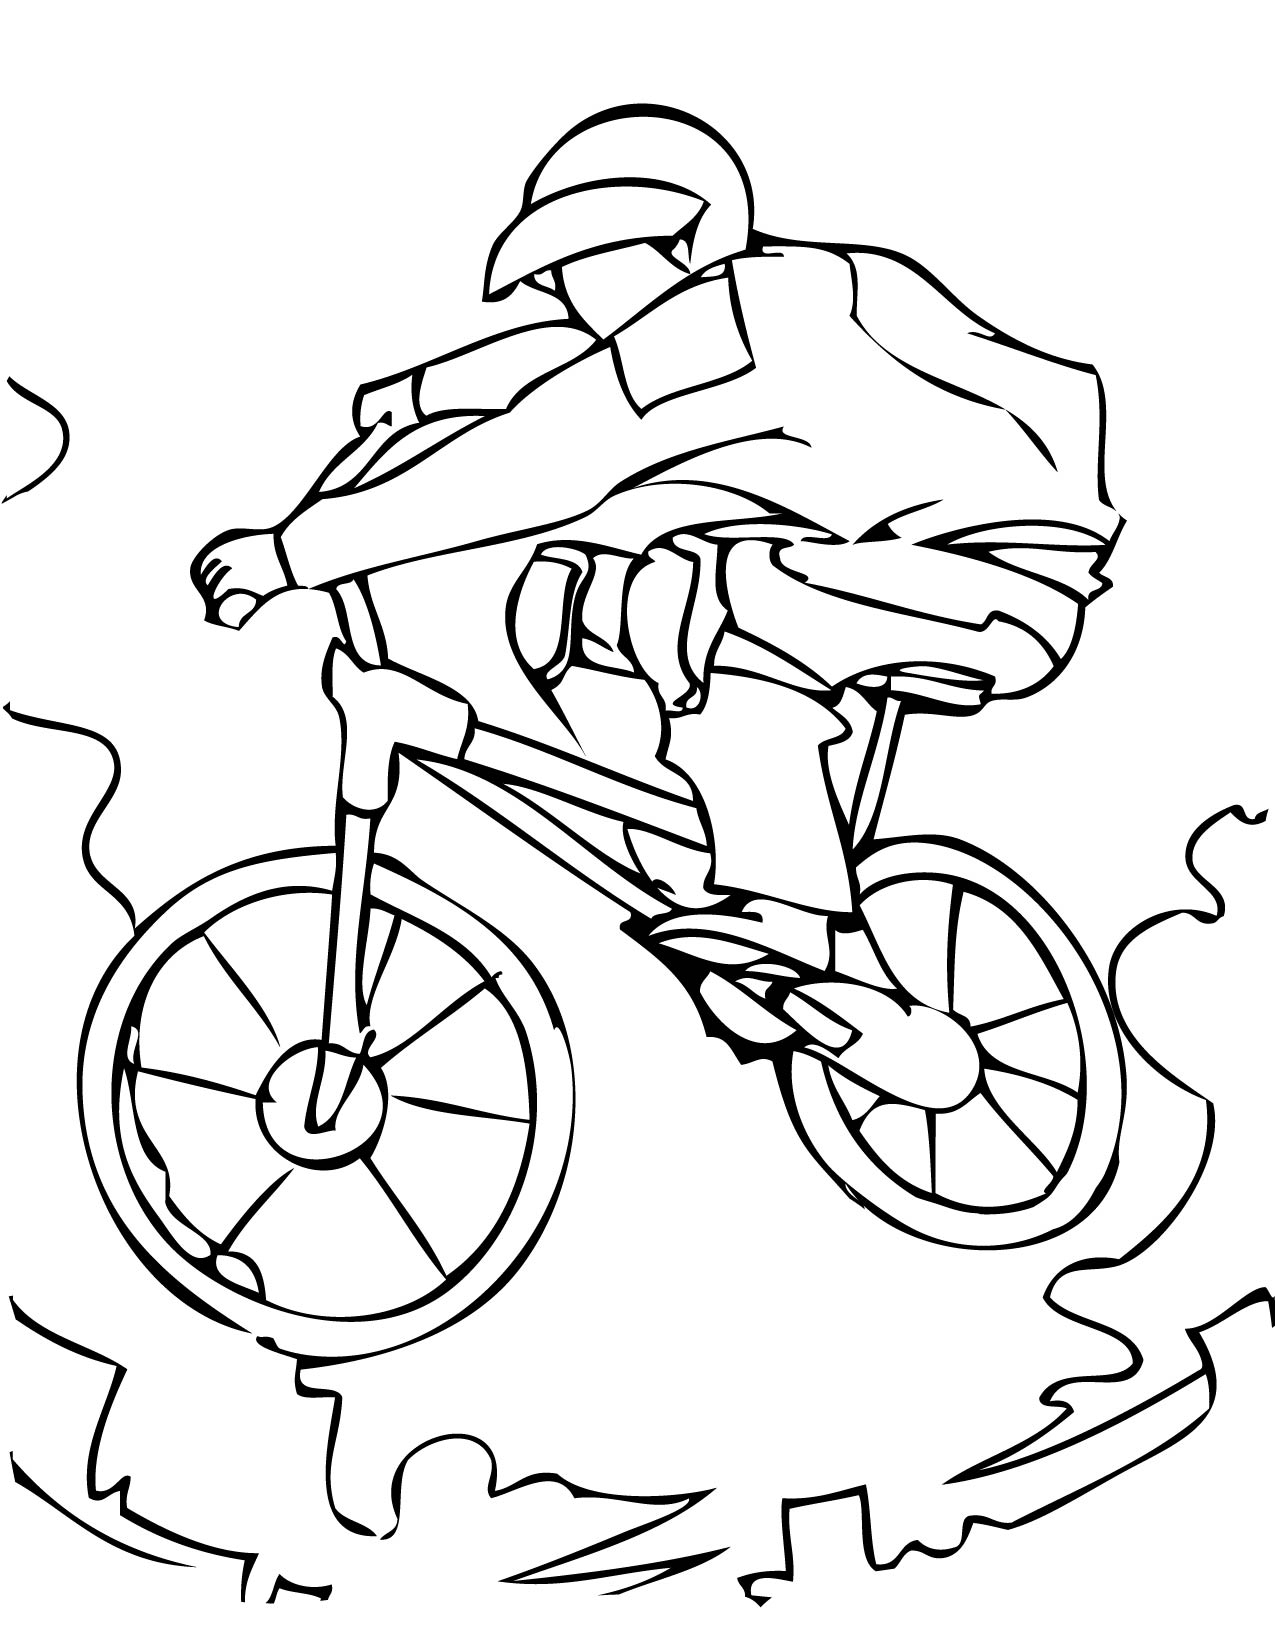 13 Dessins De Coloriage Bicyclette 224 Imprimer